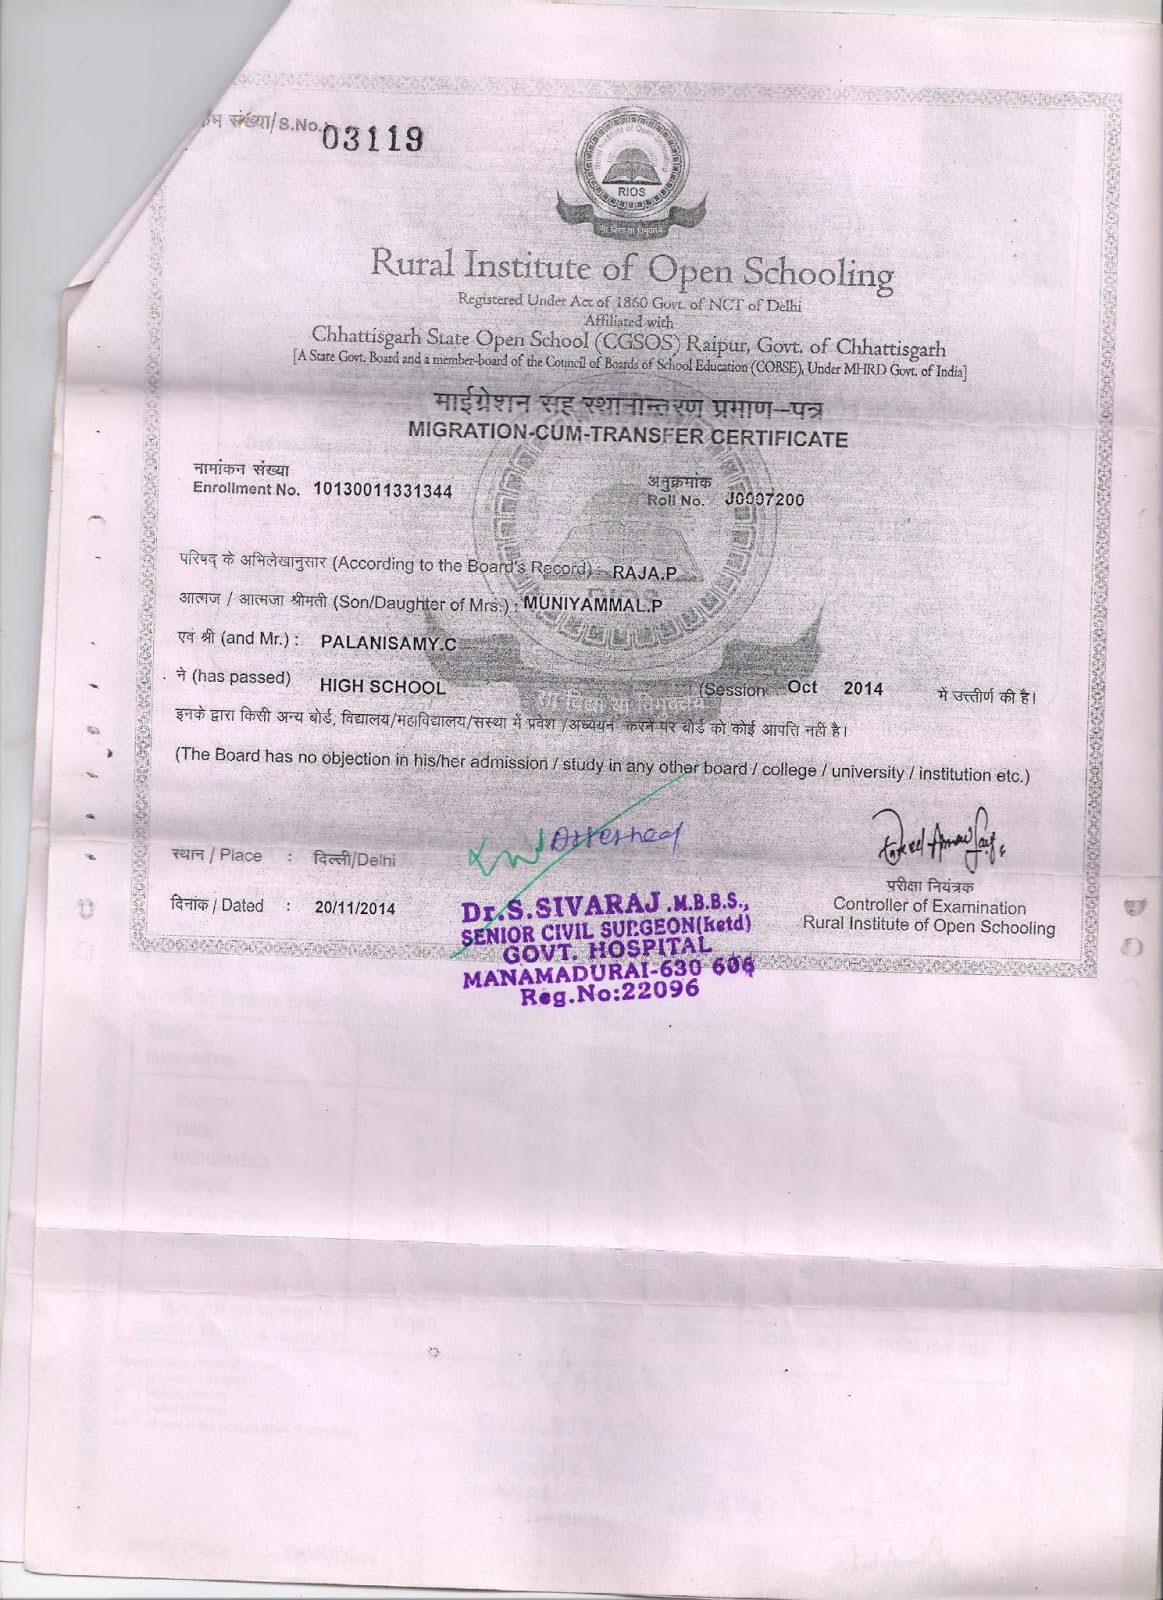 Rural institute of open schooling delhi rios receives verification letter from regional passport office coimbatore yelopaper Choice Image